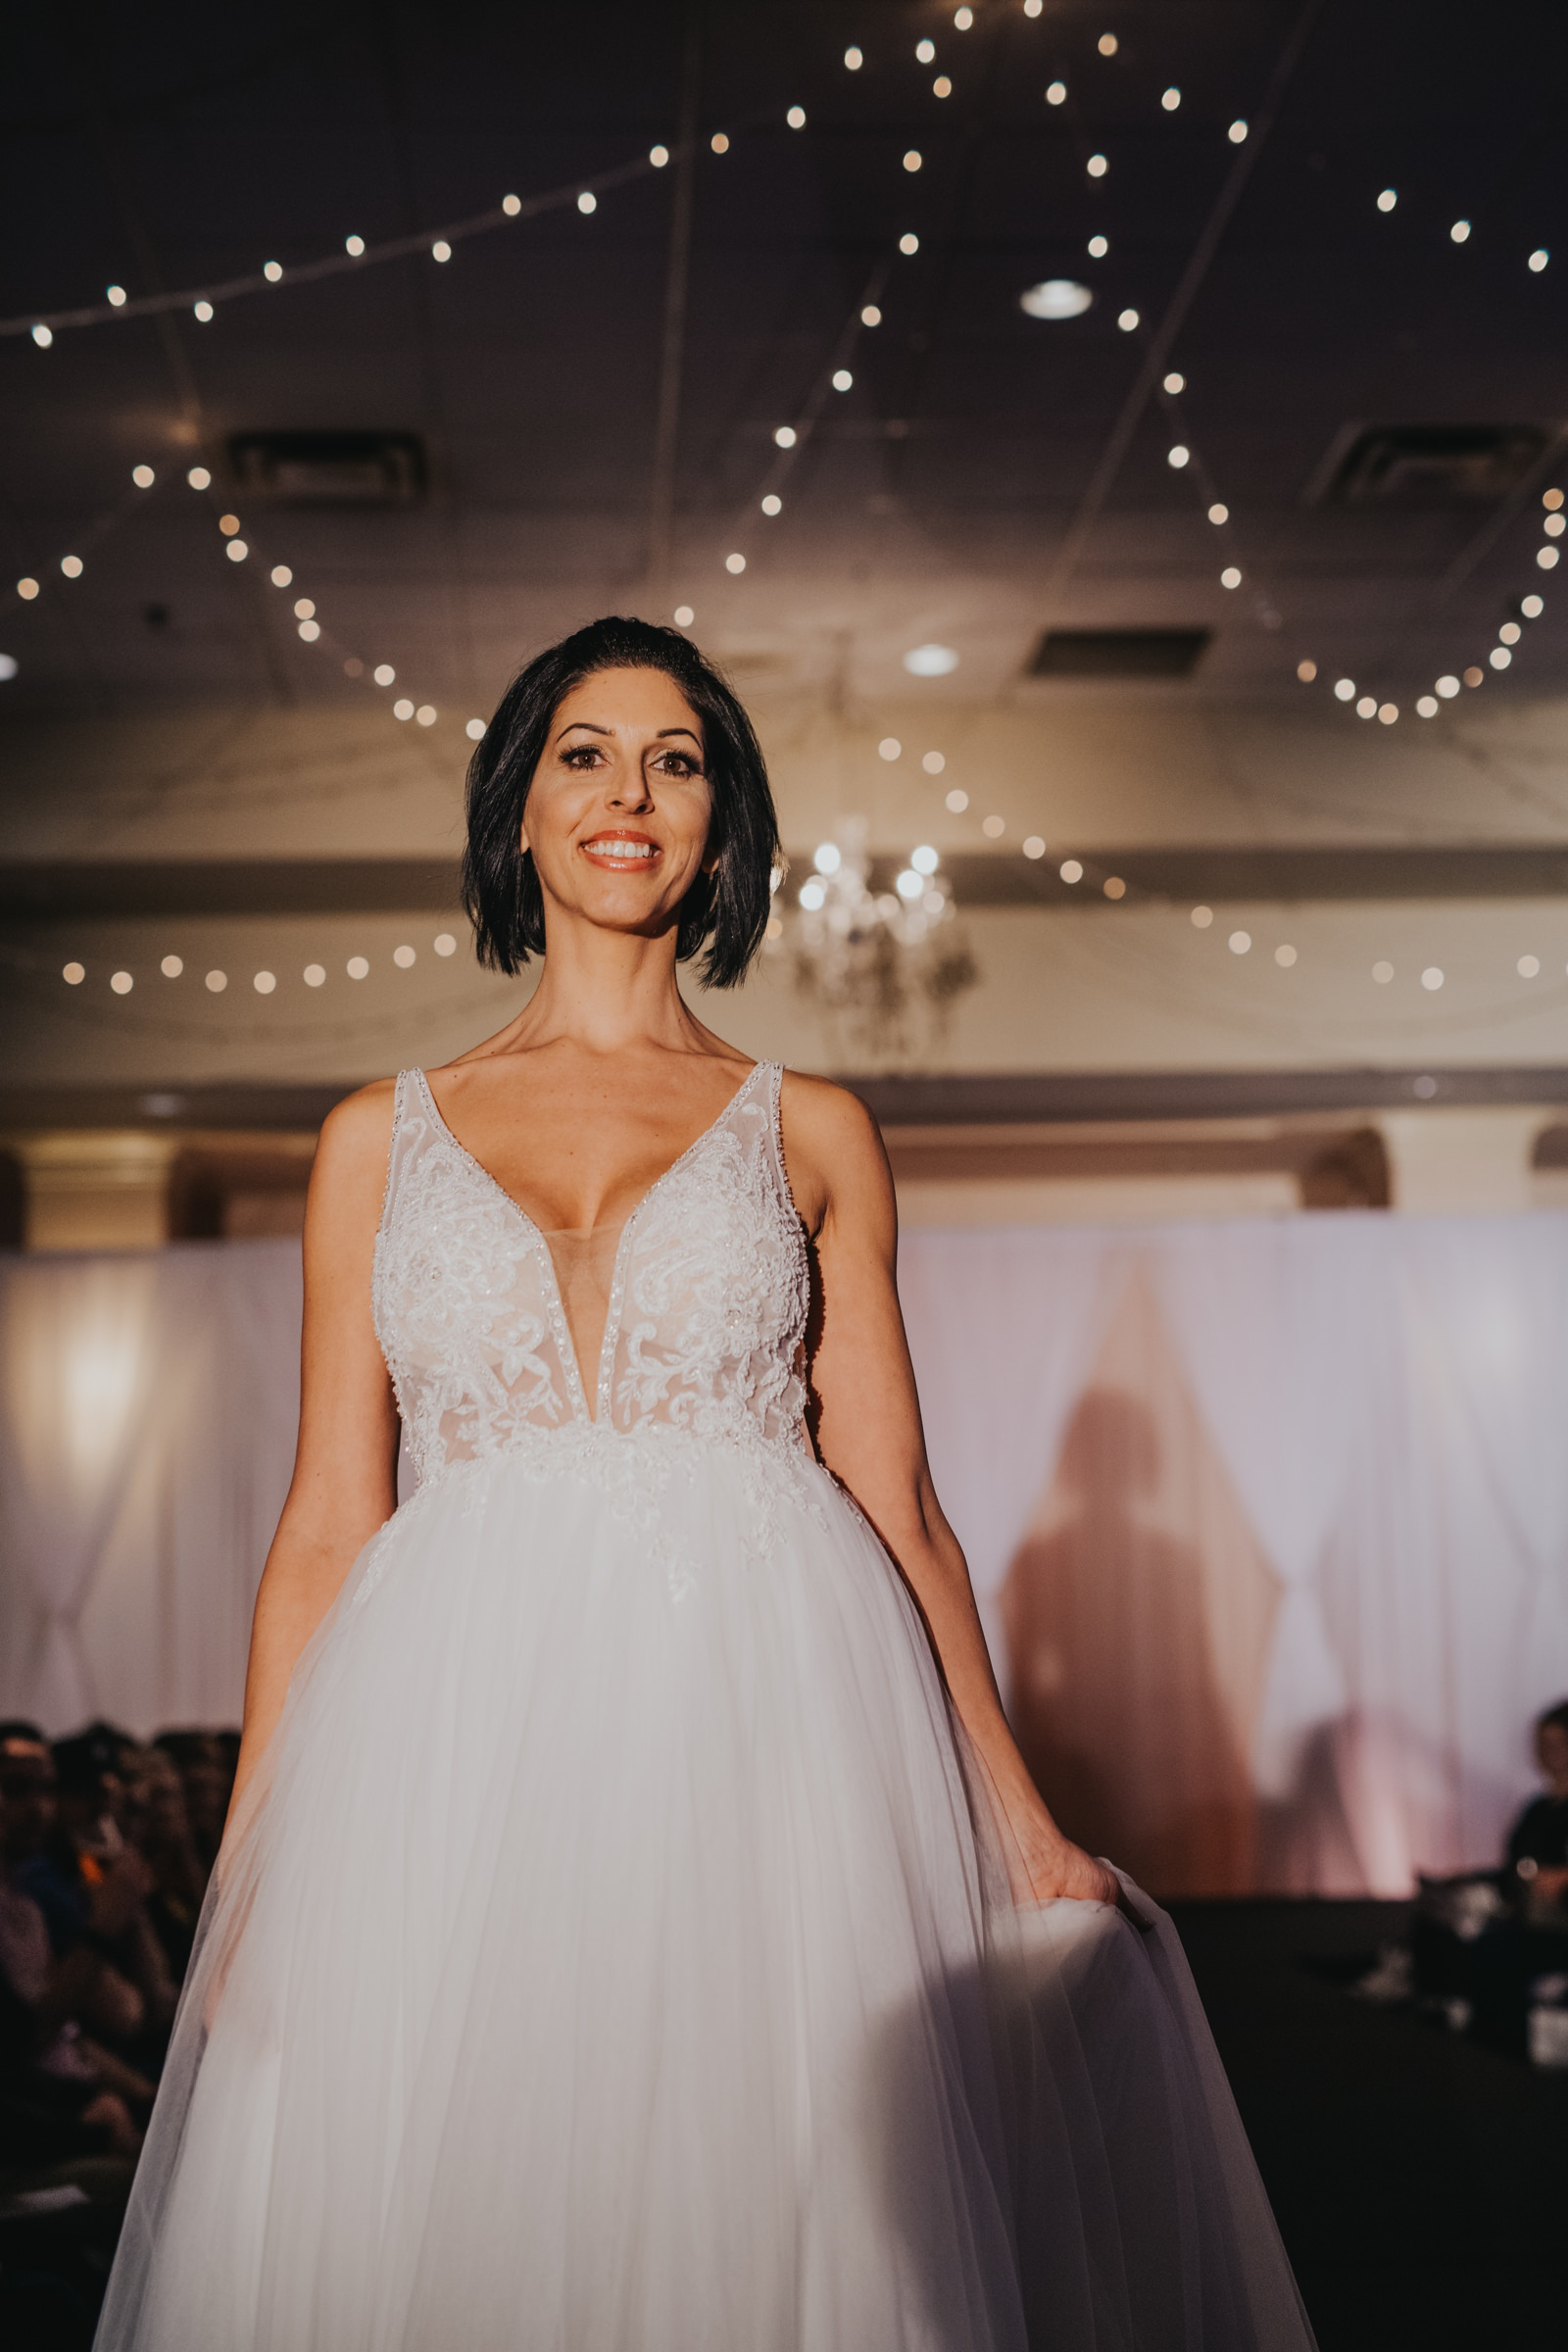 Bridal Expo - Joelsview Photography_0017